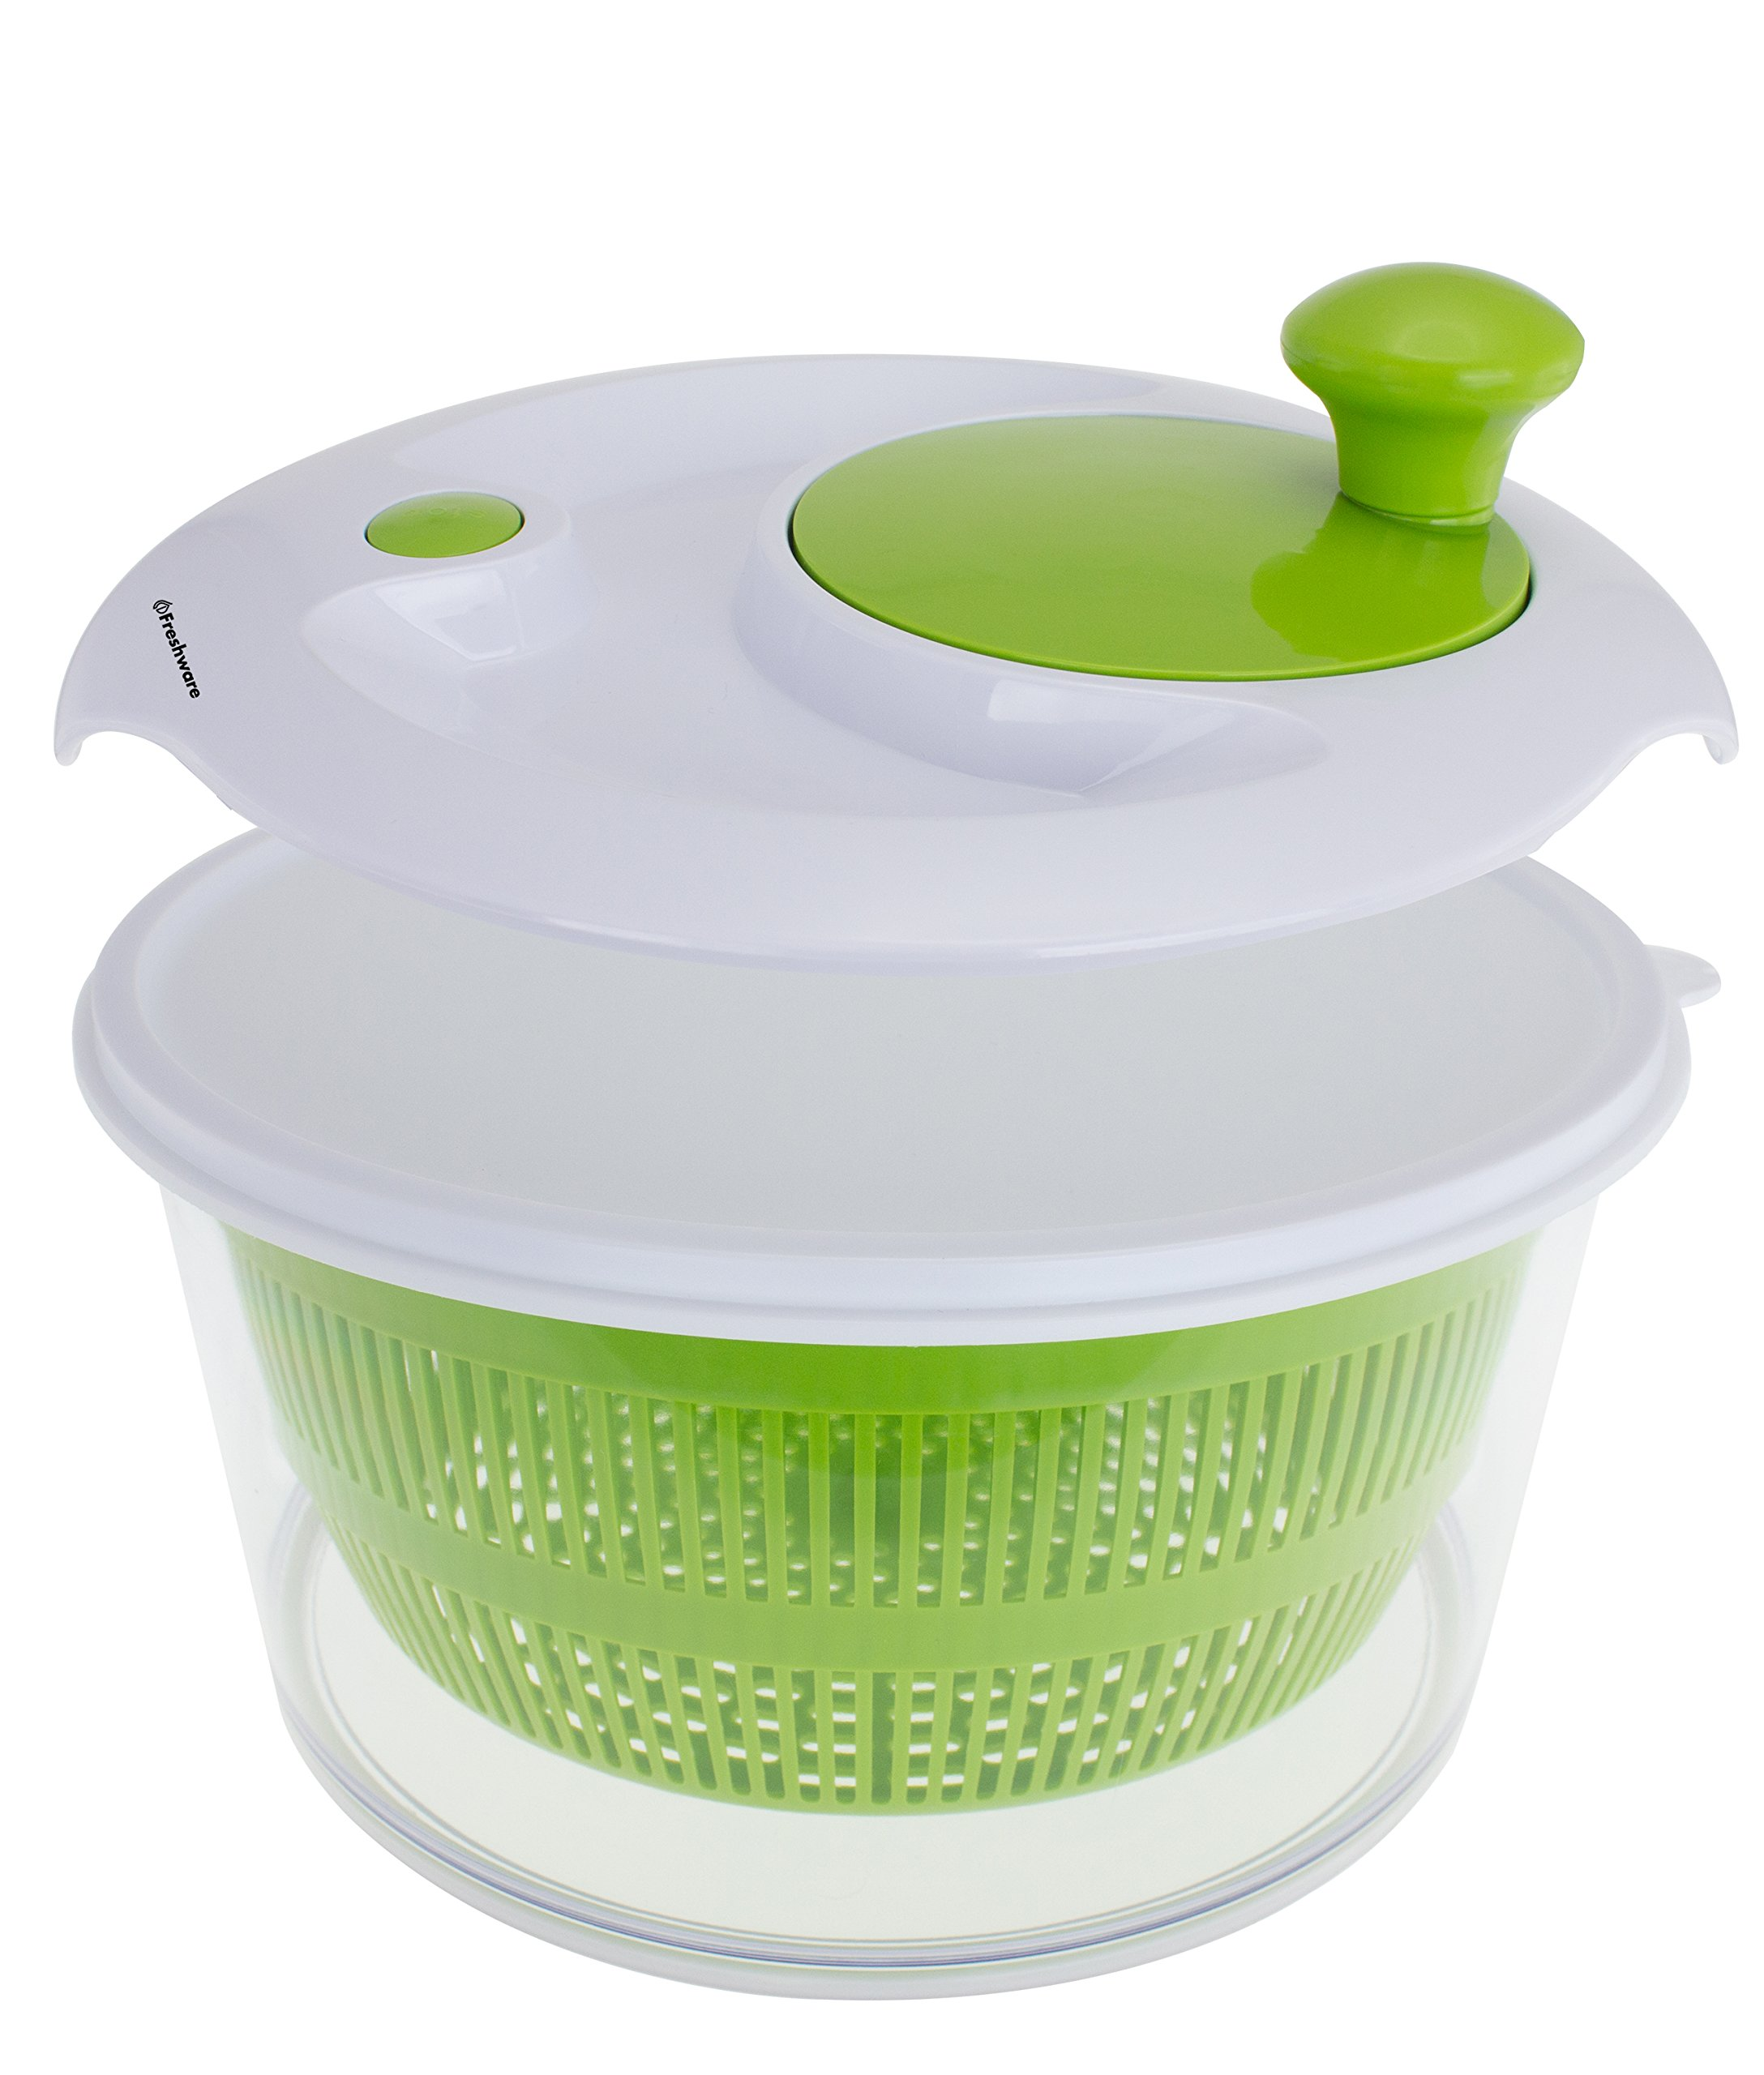 Freshware KT-503 Salad Spinner with Storage Lid